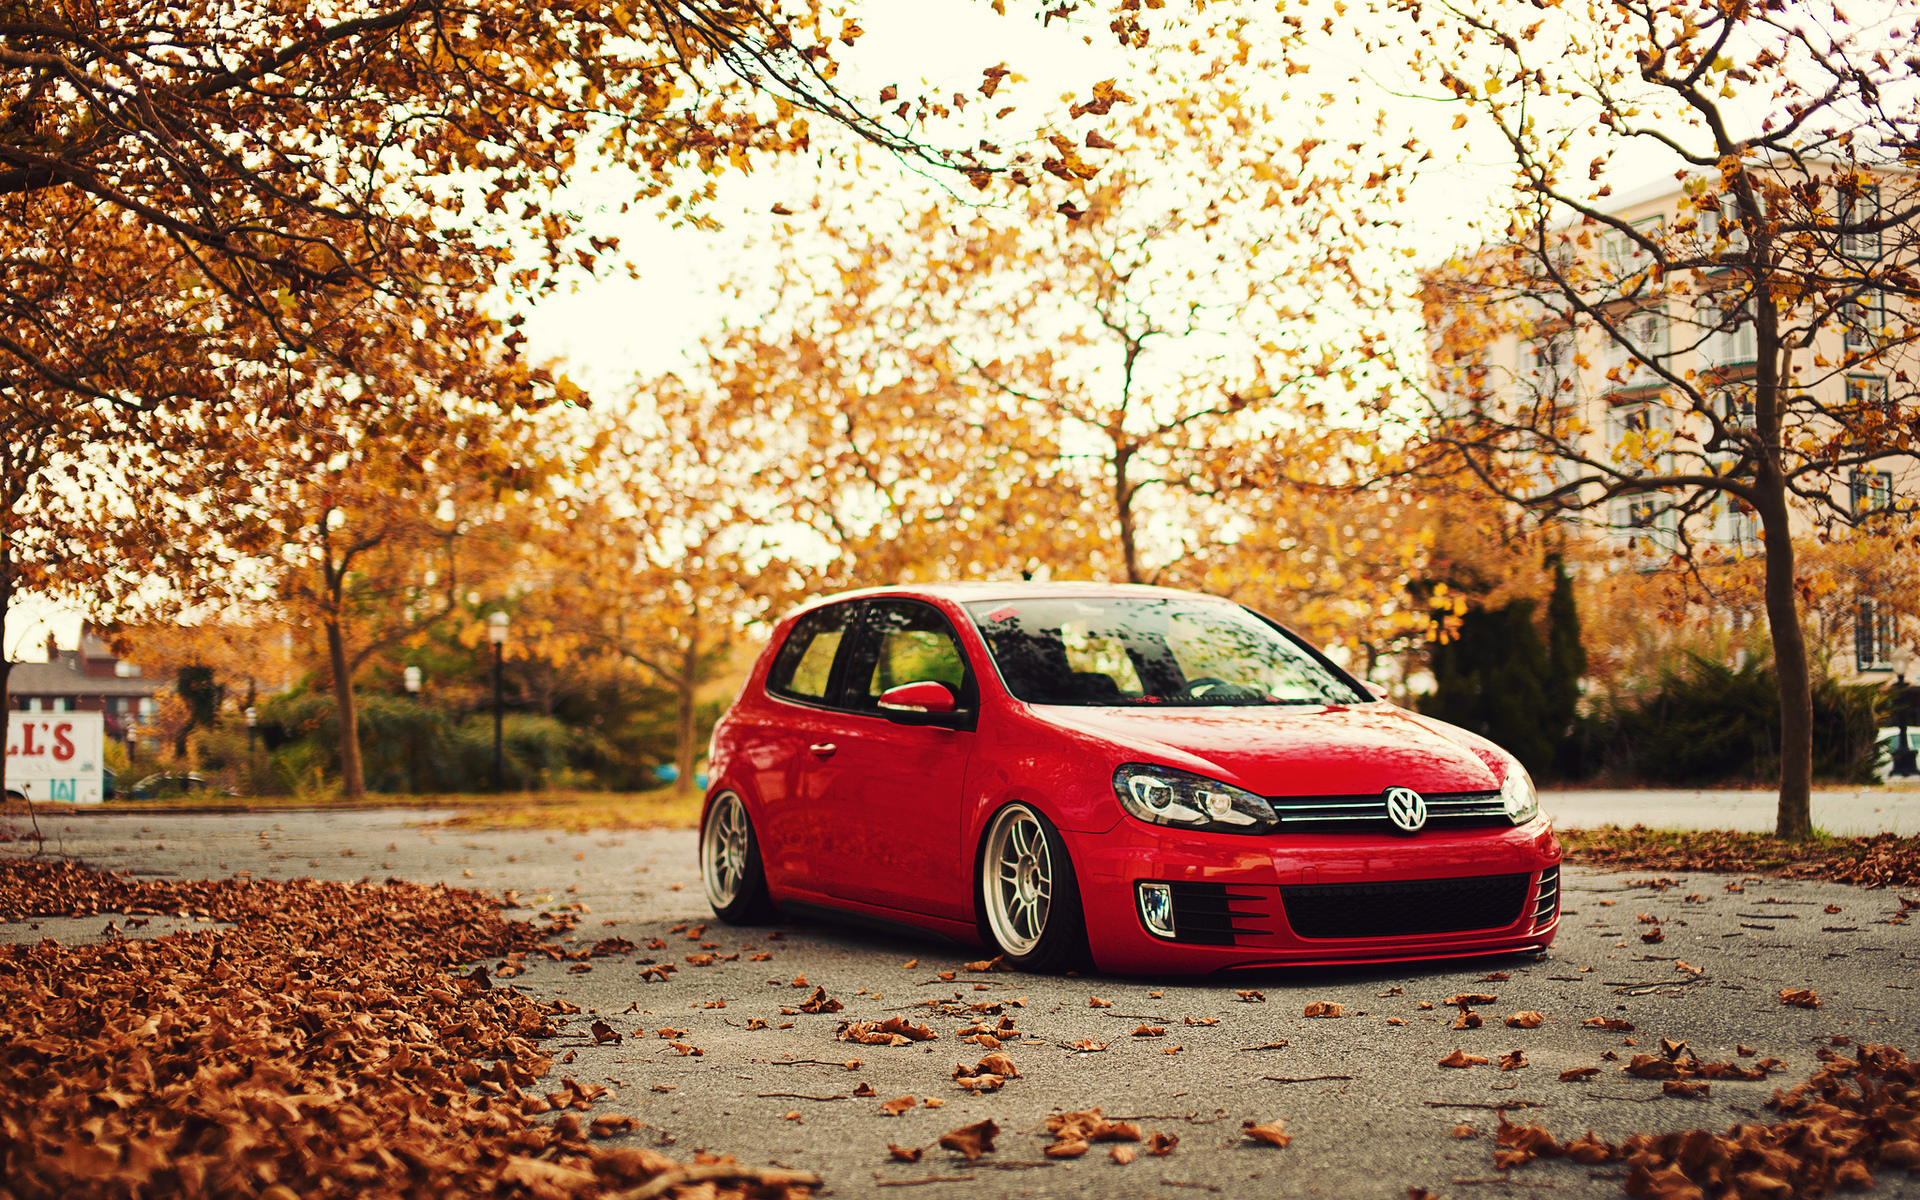 Vw Golf Wallpaper Wallpapersafari